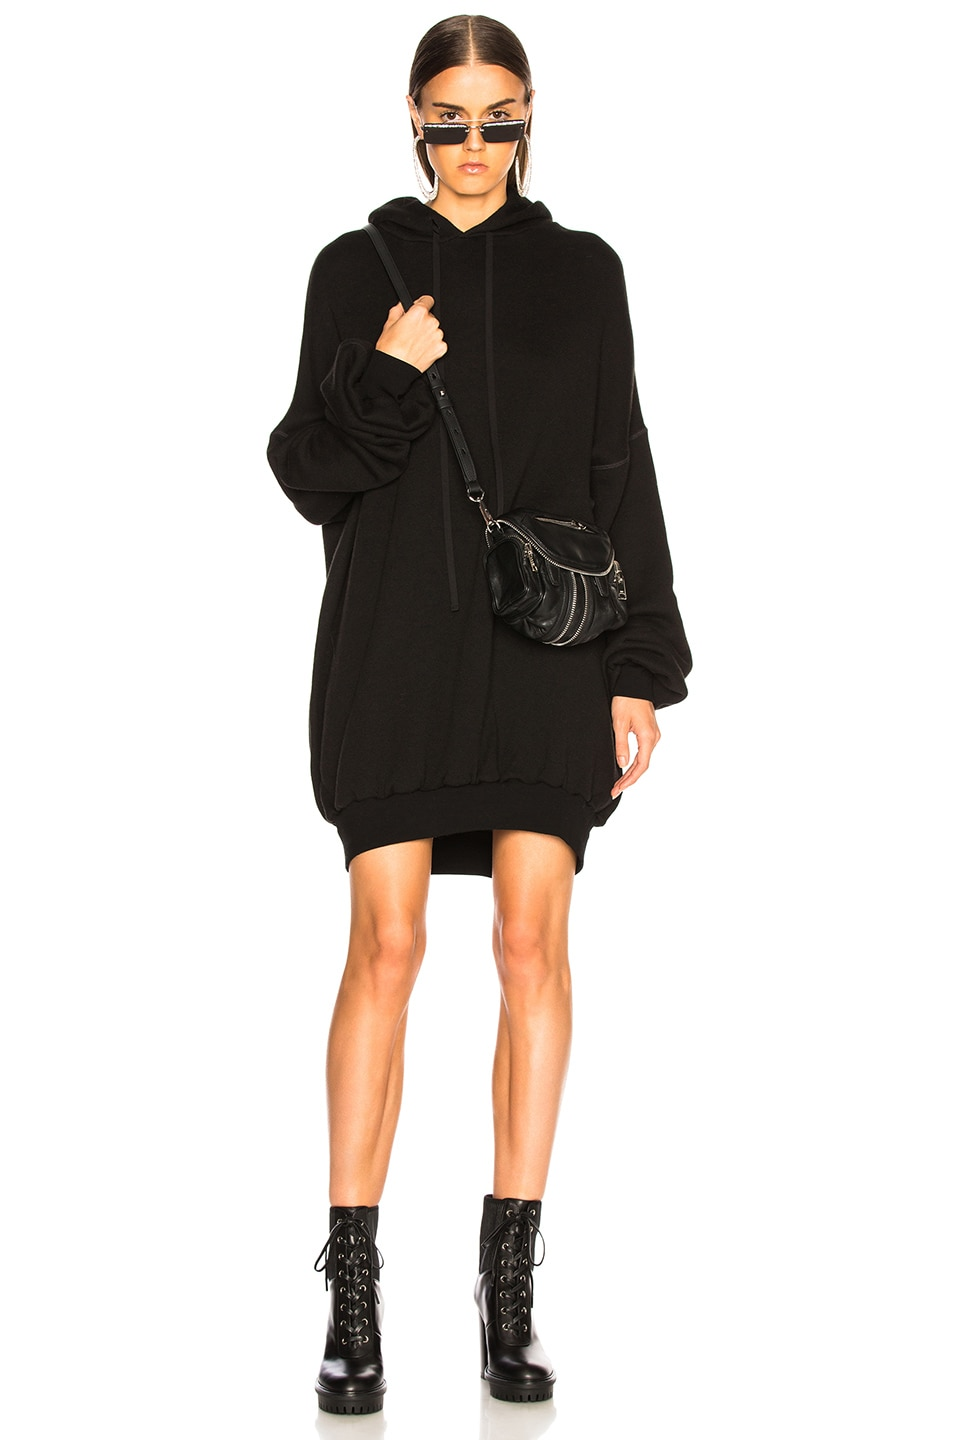 Ben Taverniti Unravel Project Dresses UNRAVEL HOODIE DRESS IN BLACK